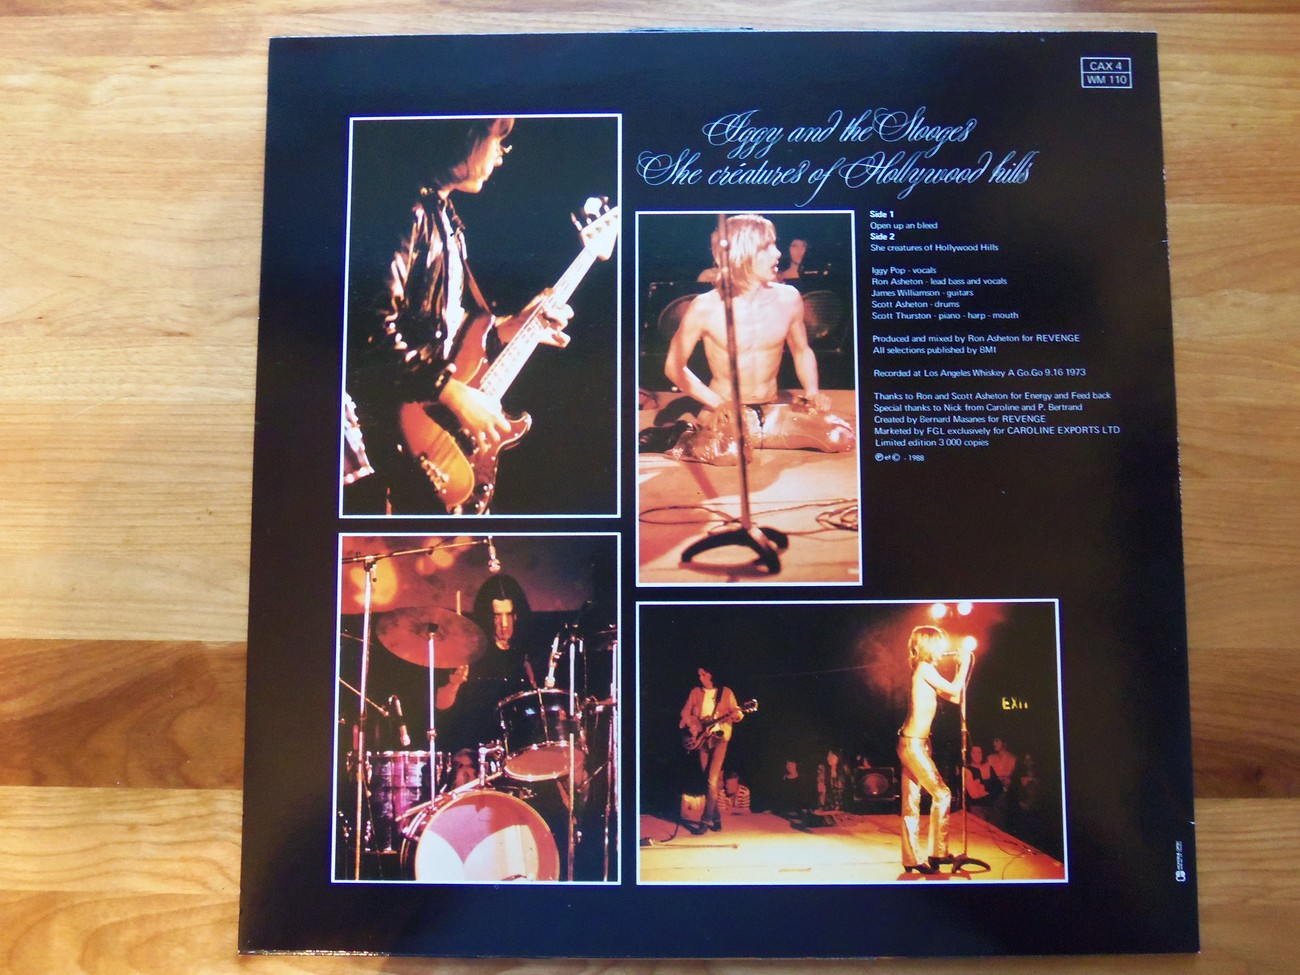 Iggy And The Stooges The She Creatures Of Hollywood Hills Ltd Ed Colored Vinyl